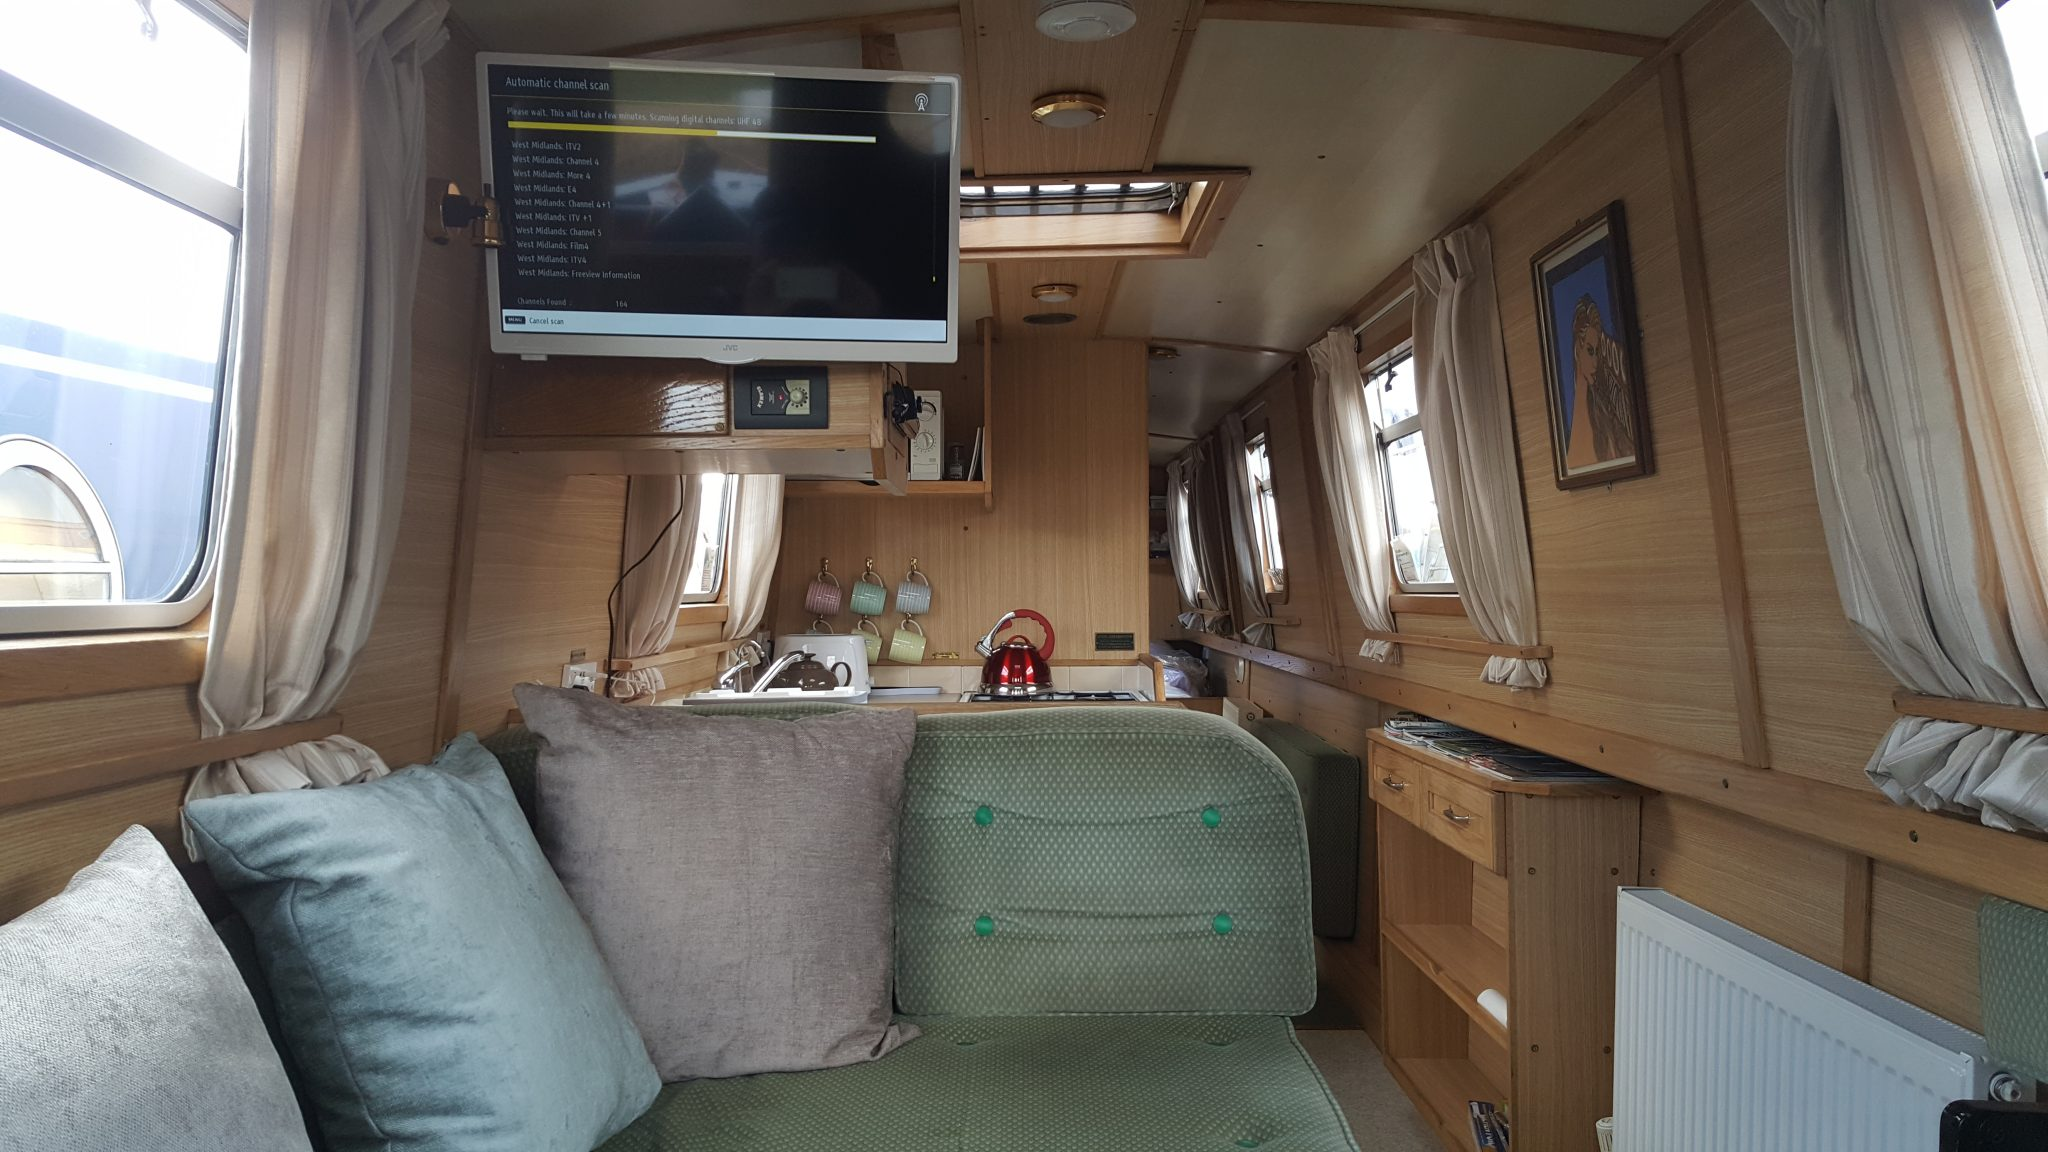 Inside the Midland Mallard Narrowboat